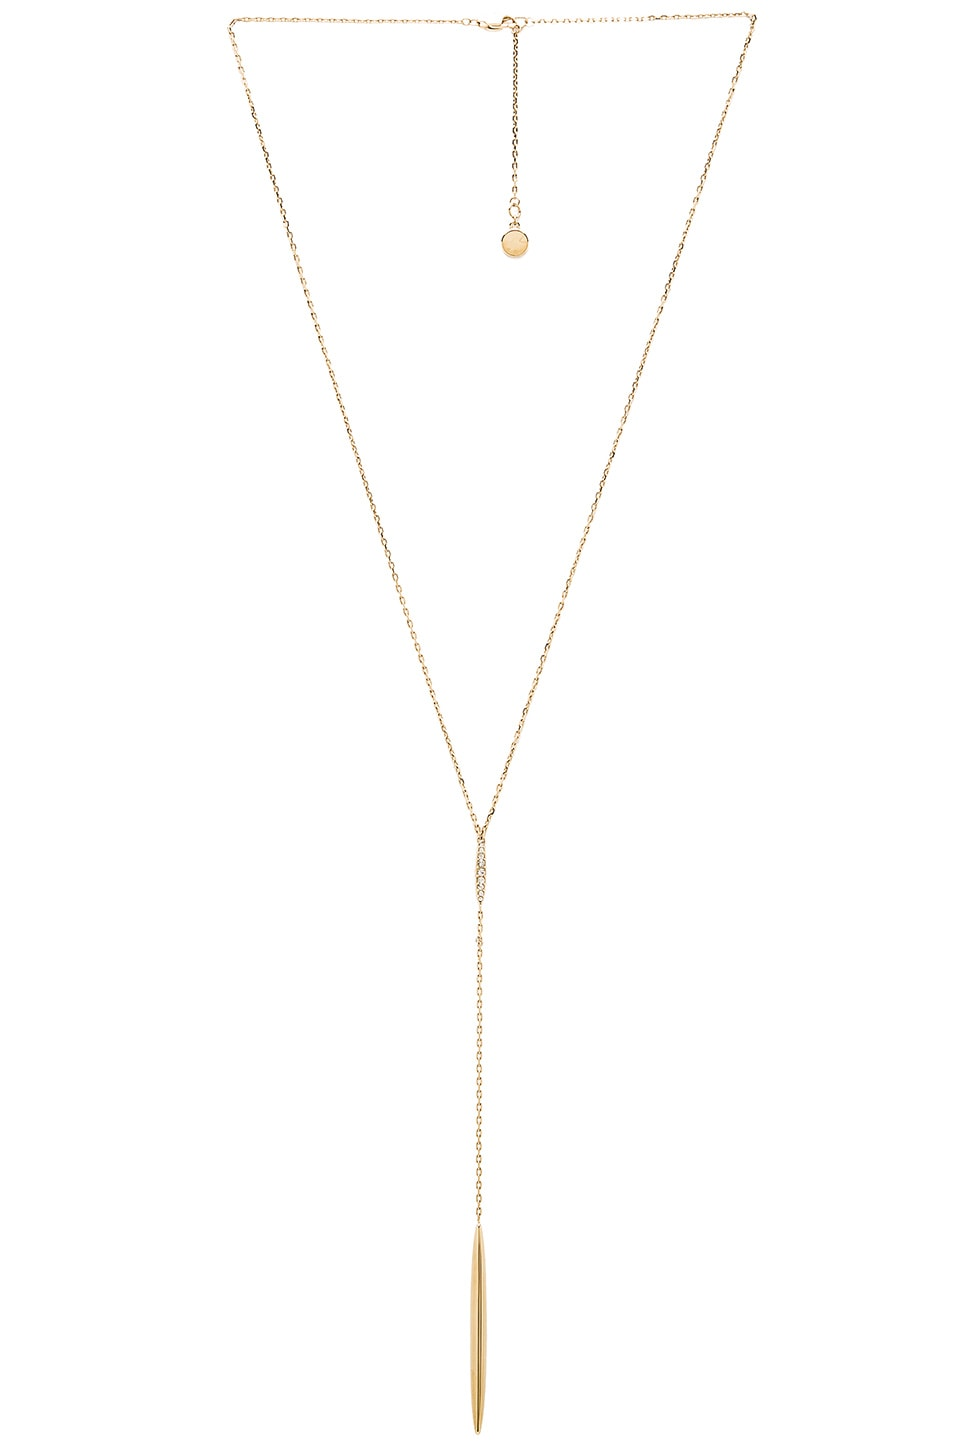 Michael Kors Summer Lariat Necklace in Gold